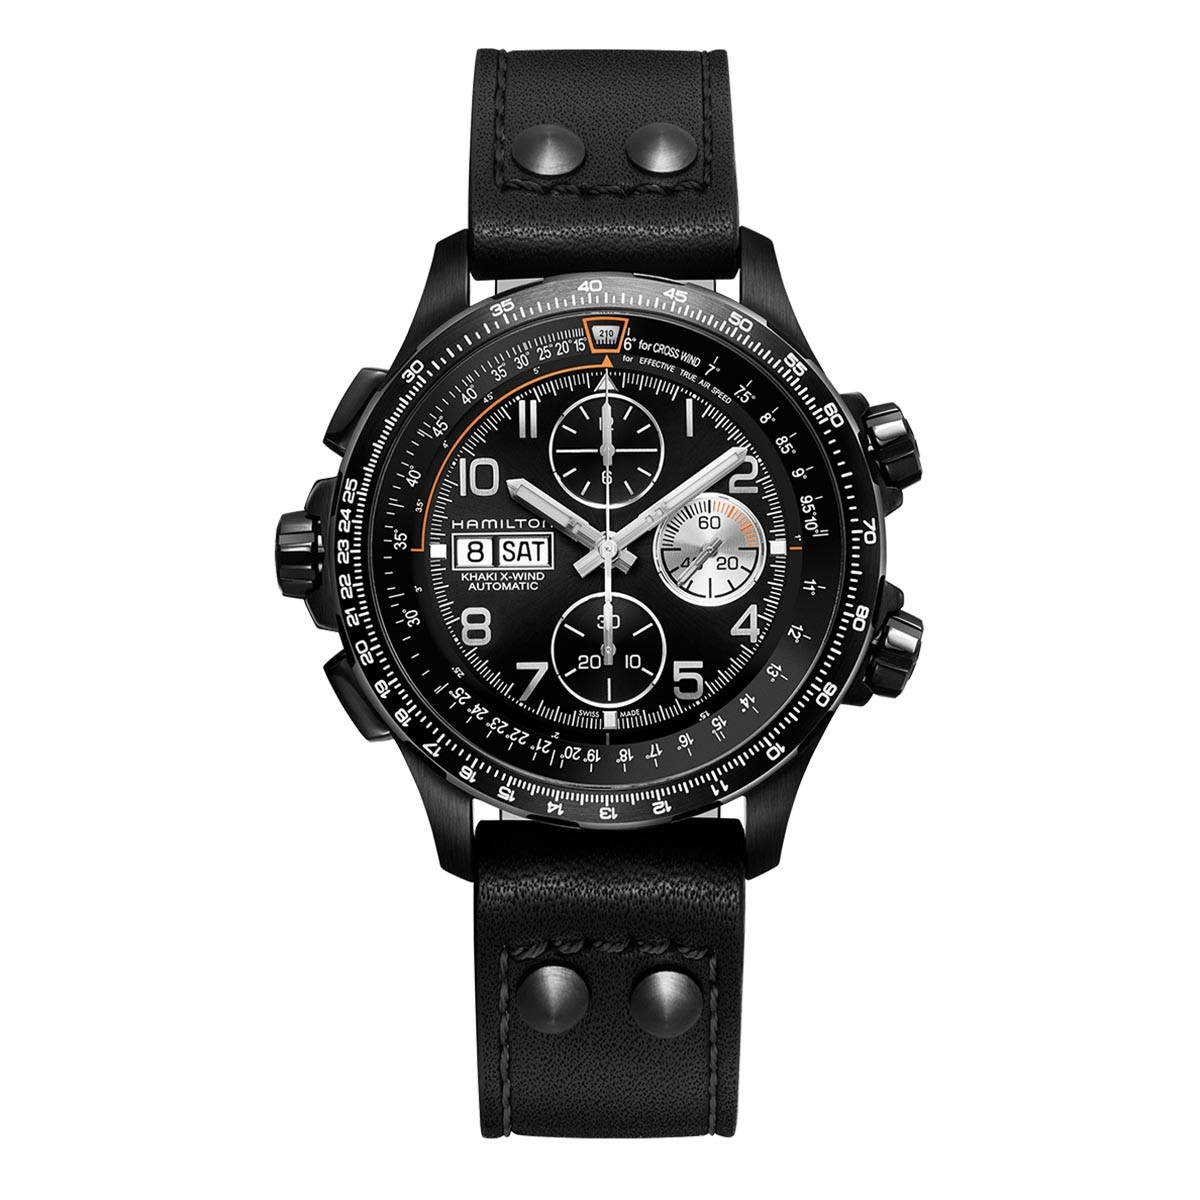 New Man's Hamilton Khaki Aviation X-Wind Chrono